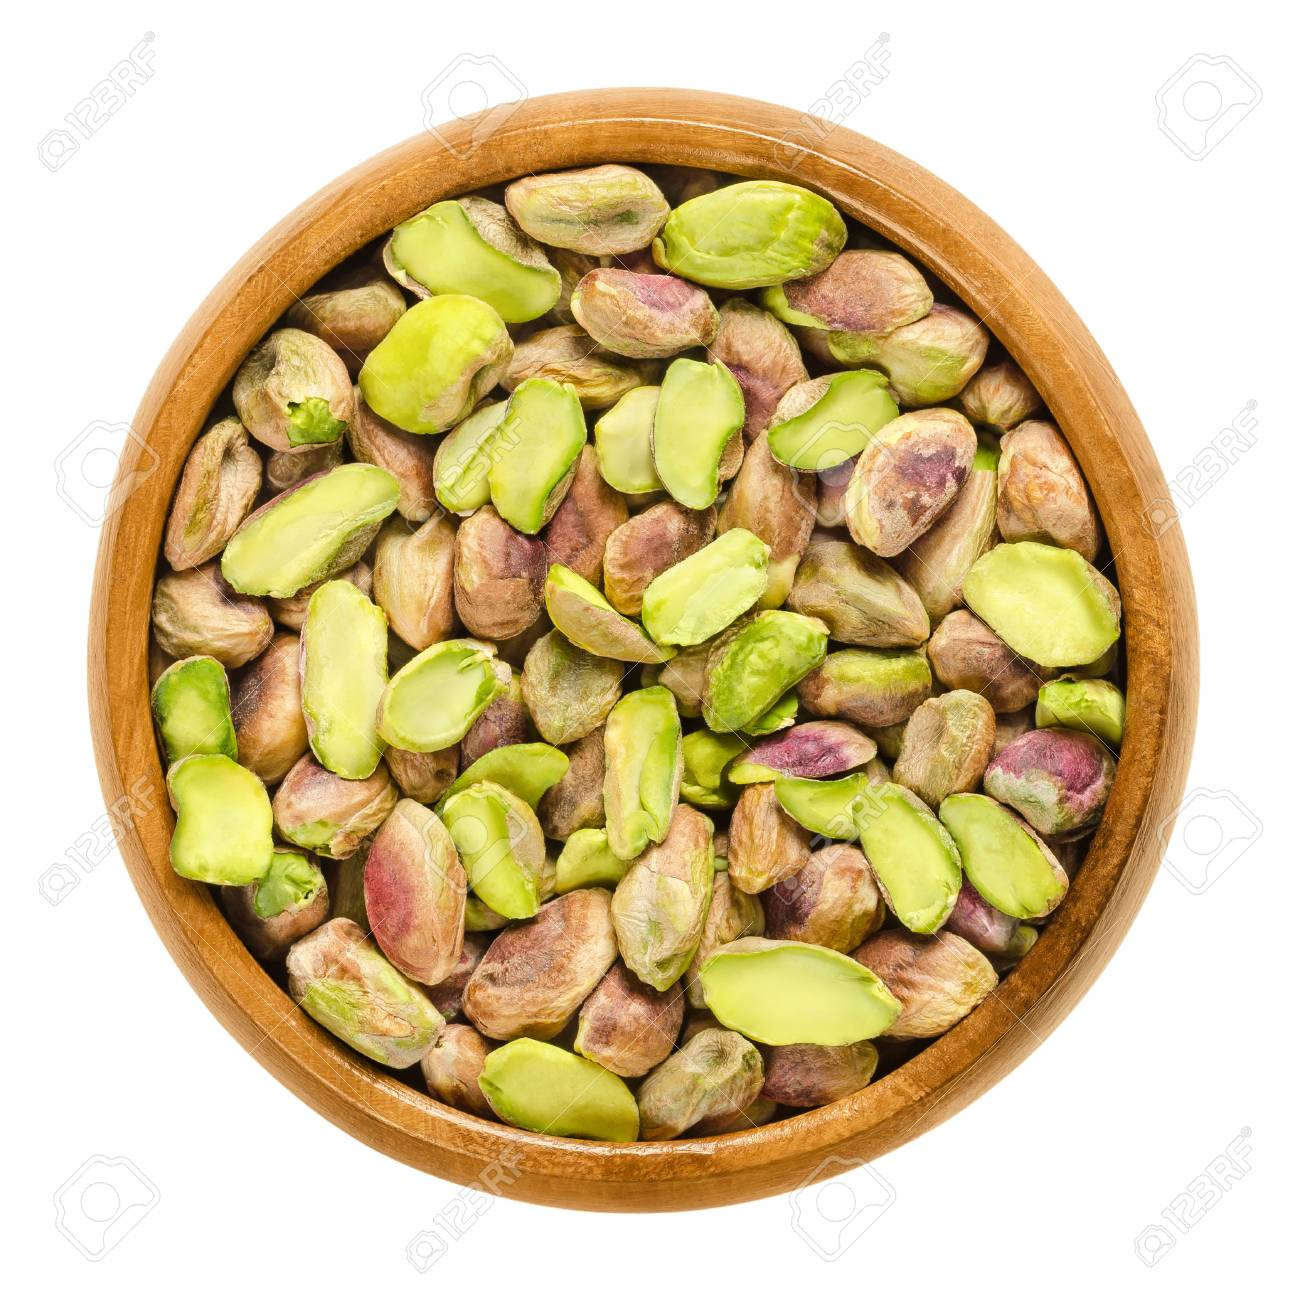 Shelled Pistachio Kernels In Wooden Bowl. Dried Seeds And Ripe ...